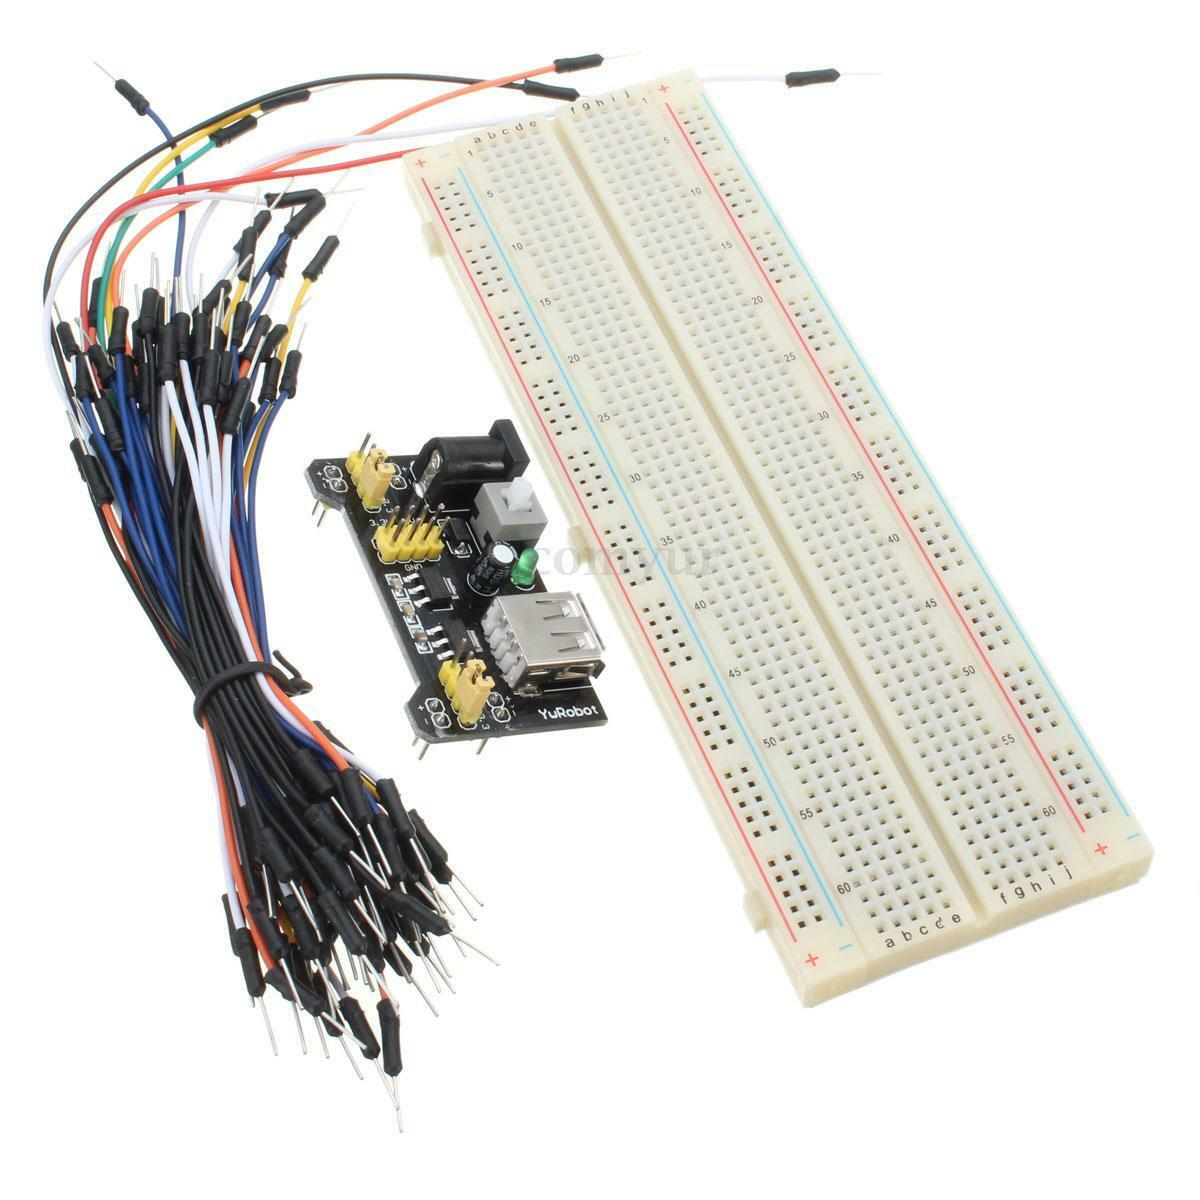 Solderless Prototype Pcb Breadboard With 65pcs Jumper Leads Wires Stripboard Price Protoboard Circuit Board Norton Secured Powered By Verisign